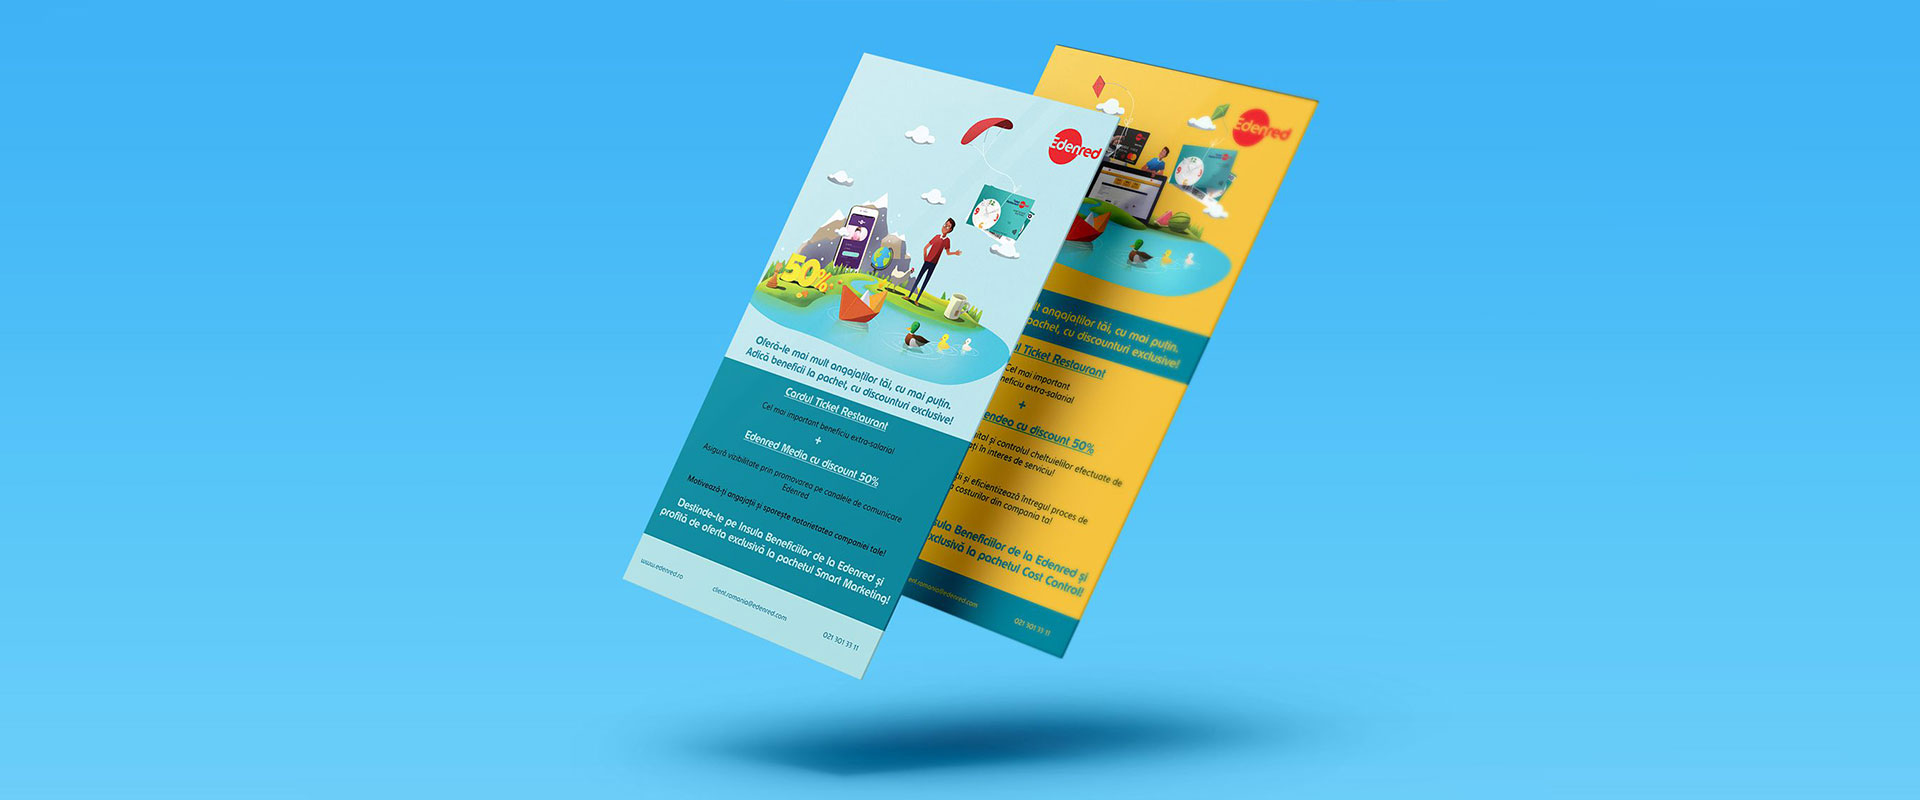 Campaign-marketing-illustration-benefits-MockUp-Deliver